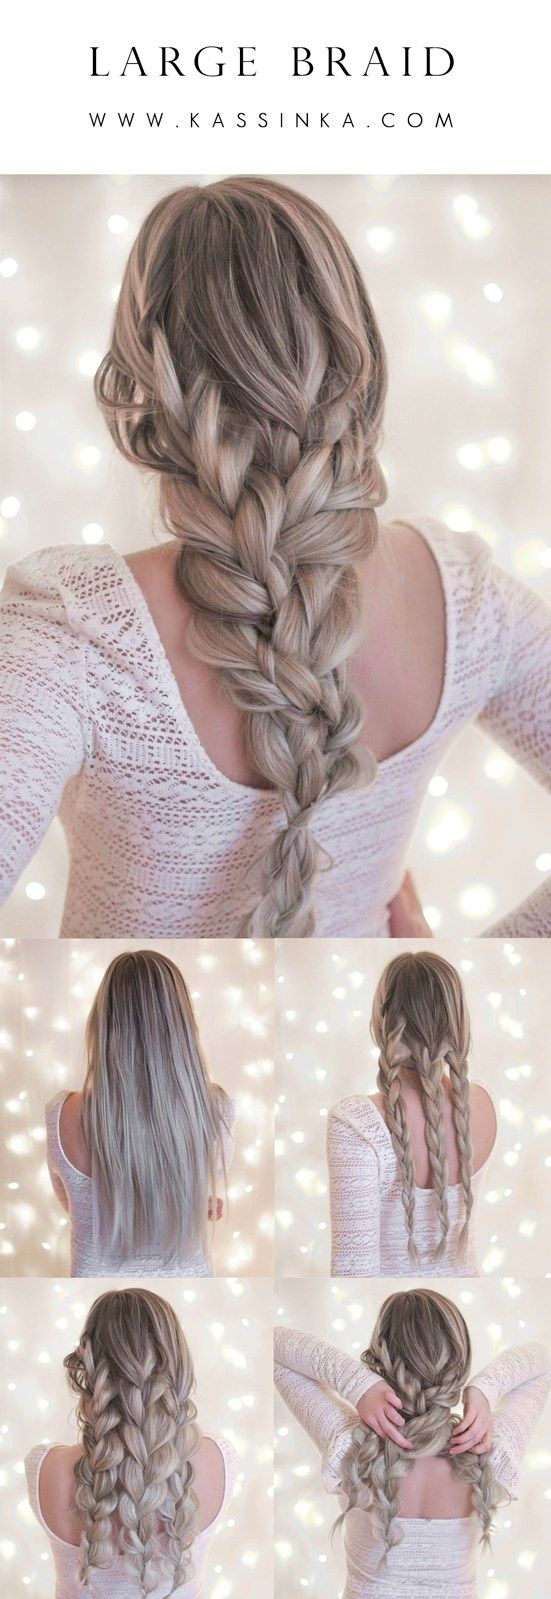 This simple style takes the standard braid look to something that will stand out. With a few easy-to-master steps and a couple of hair pins add a little something special, so you'll feel polished w…